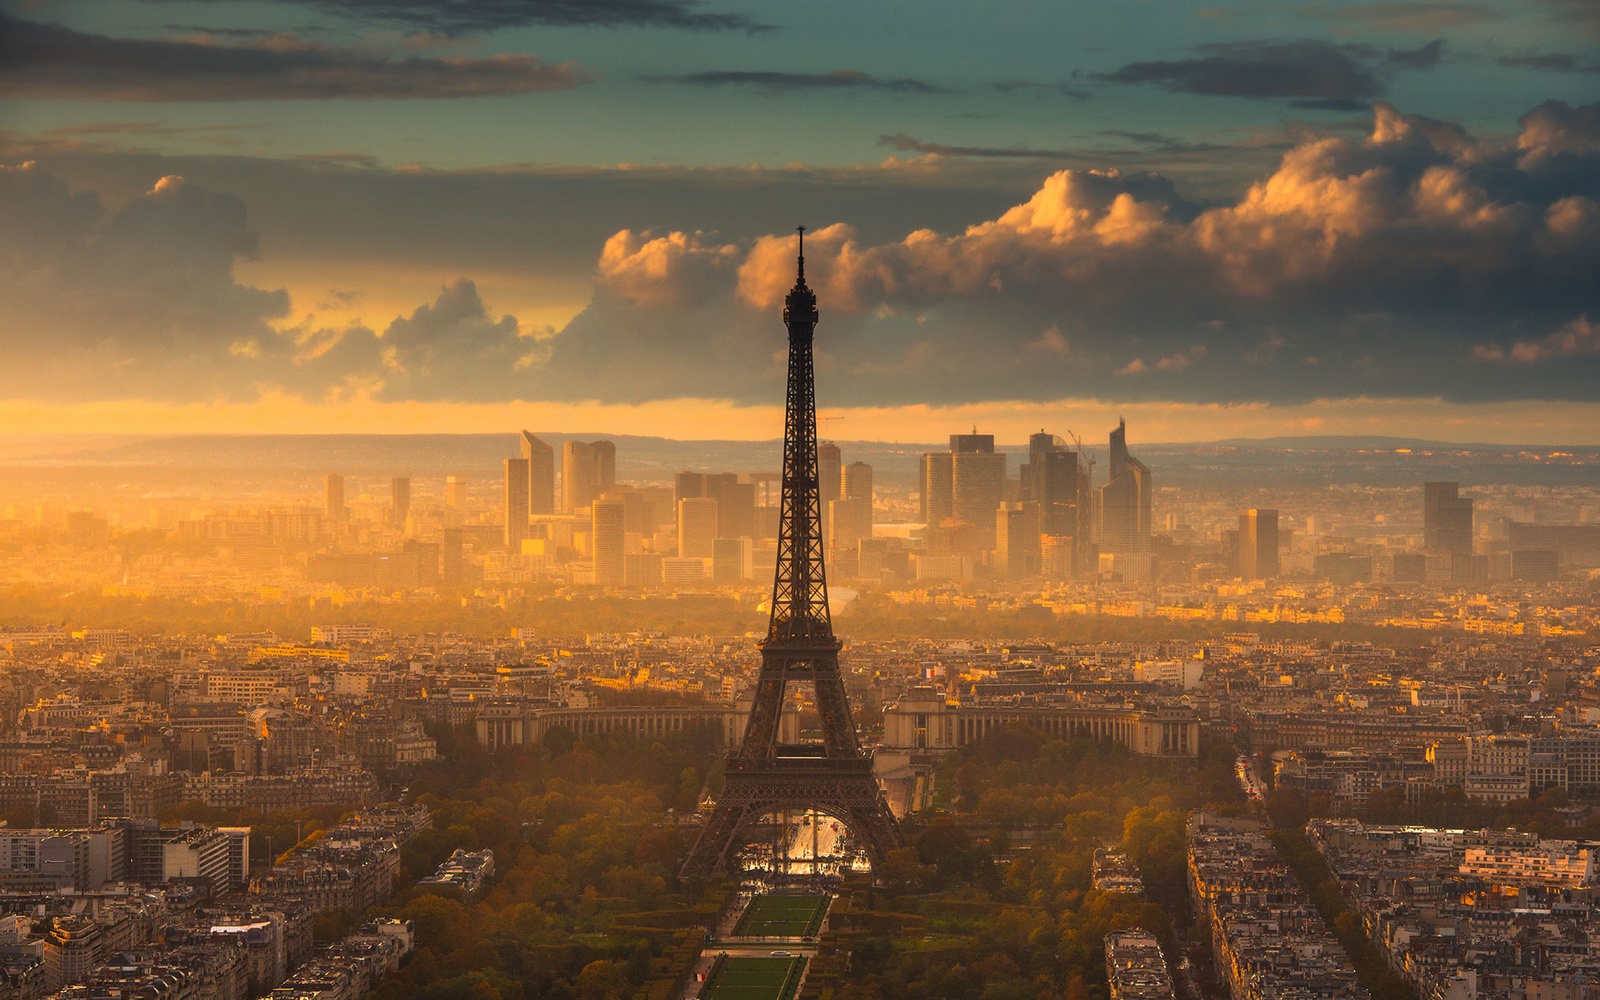 Sunset in Paris at tour montparnasse